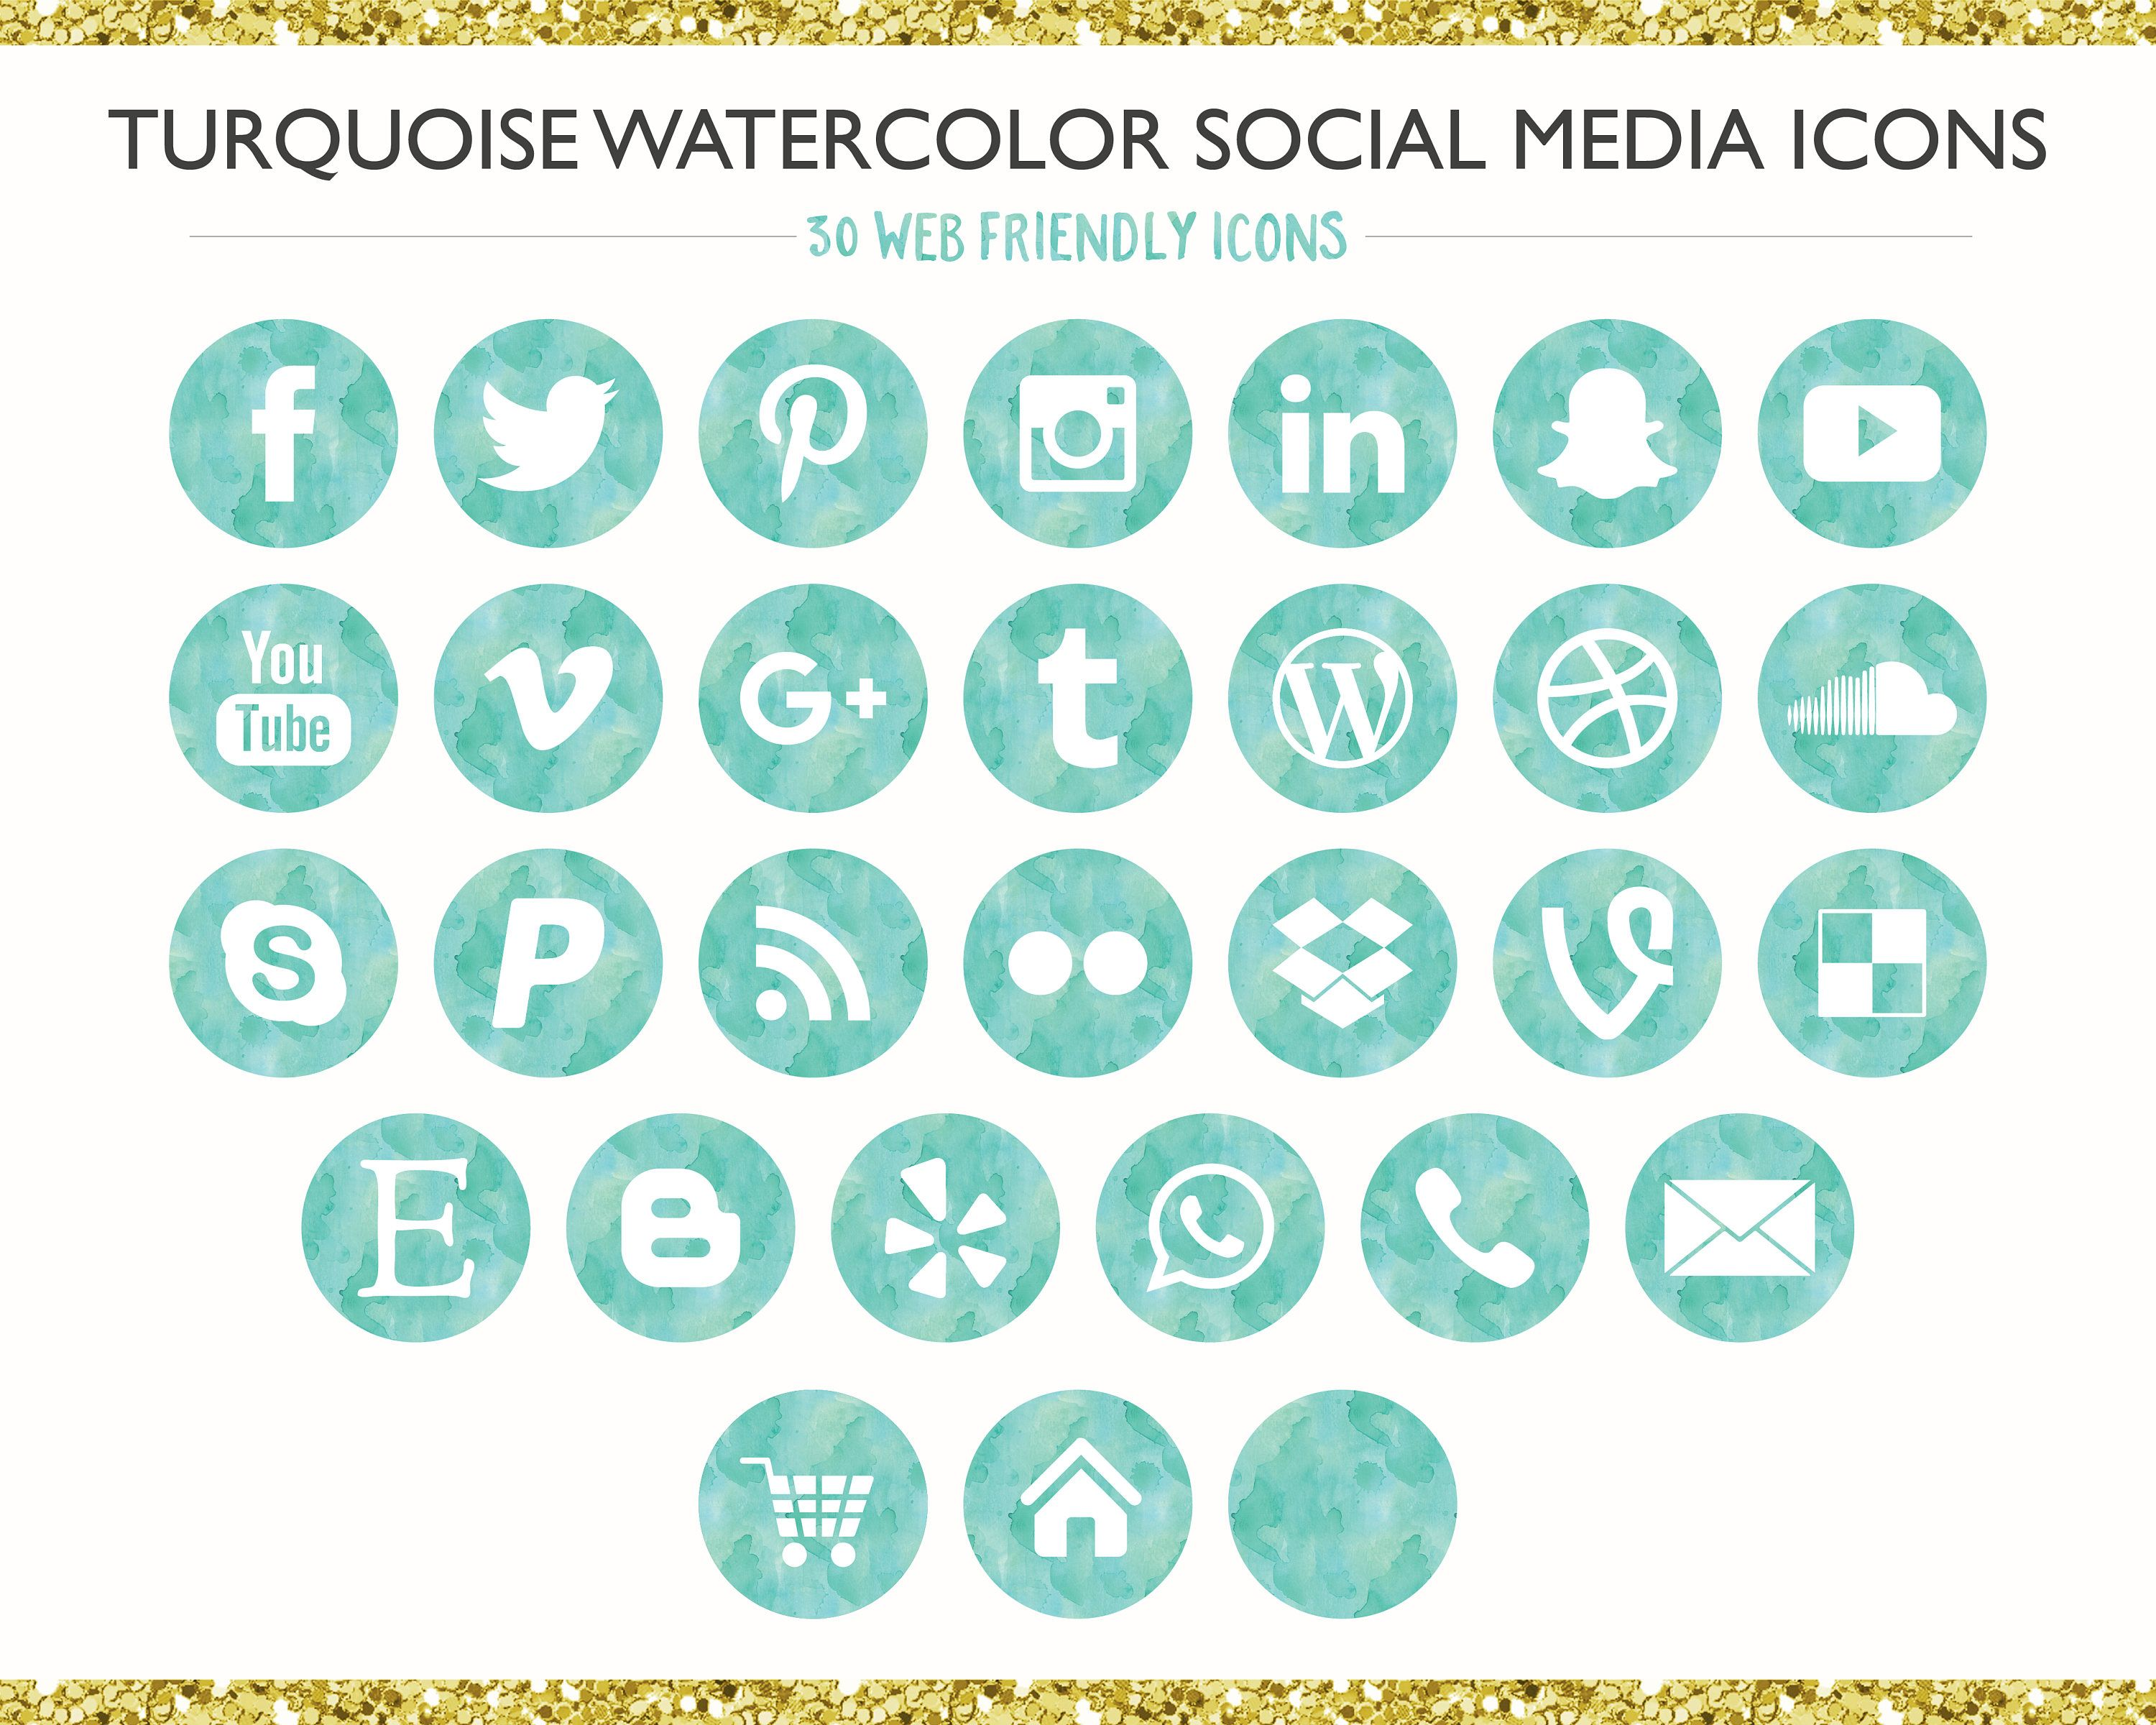 120 Turquoise, Teal Ombre Watercolor Social Media Icons